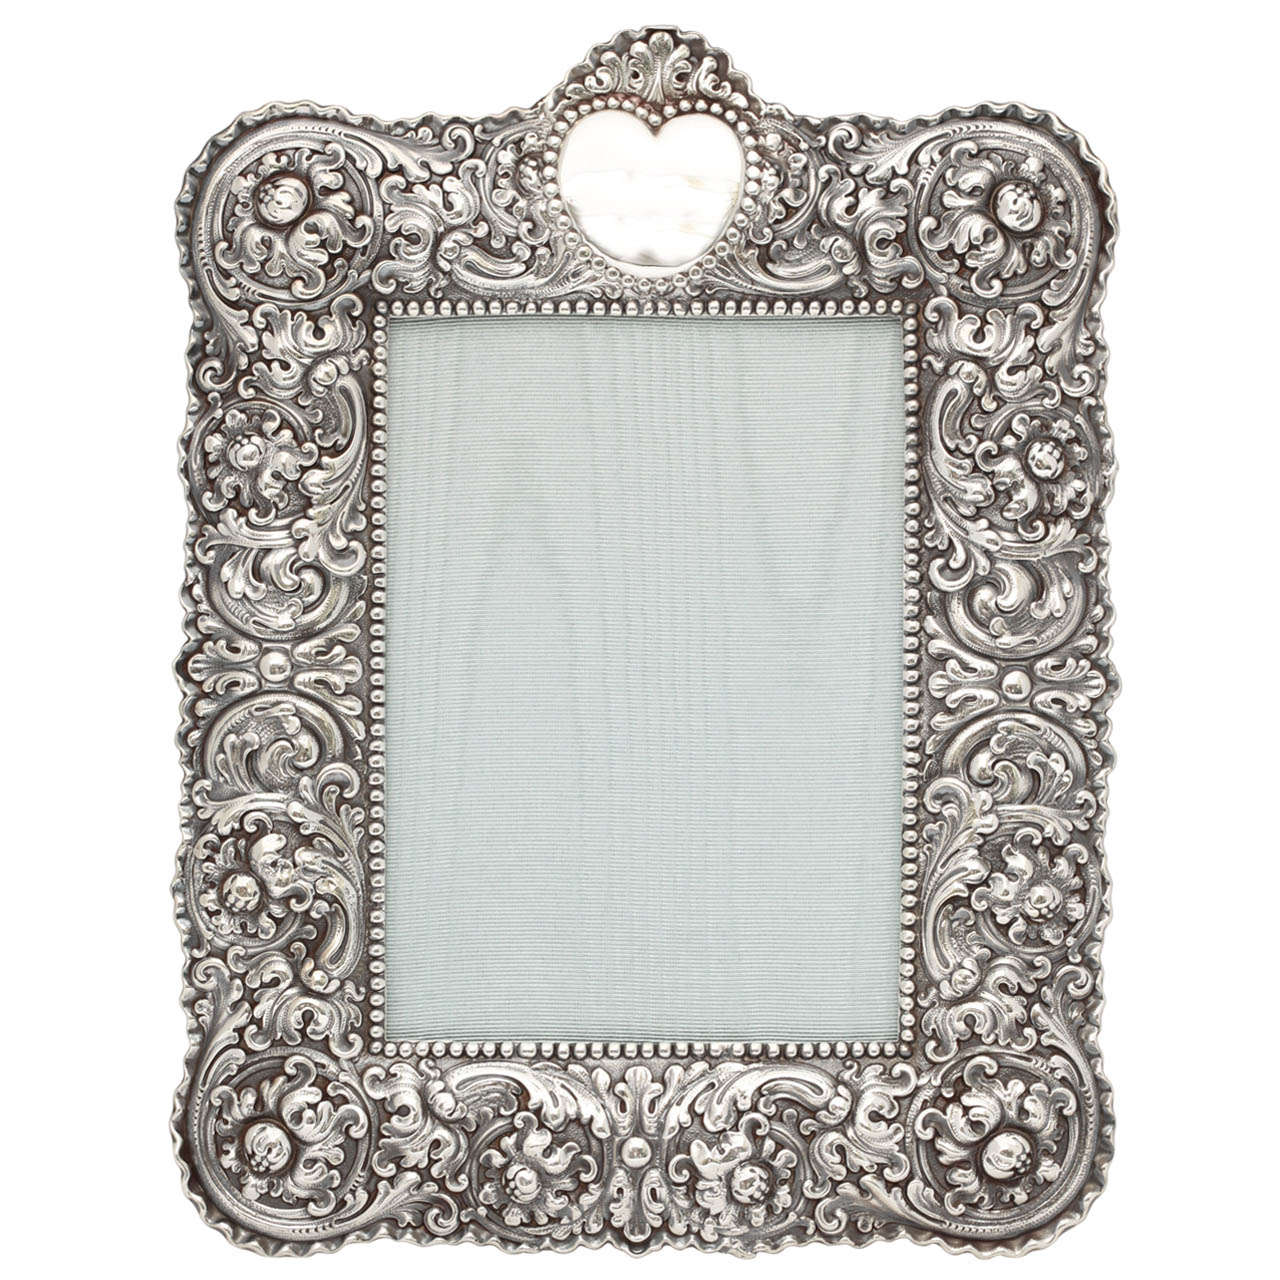 Tiffany Sterling Silver Picture Frame at 1stdibs